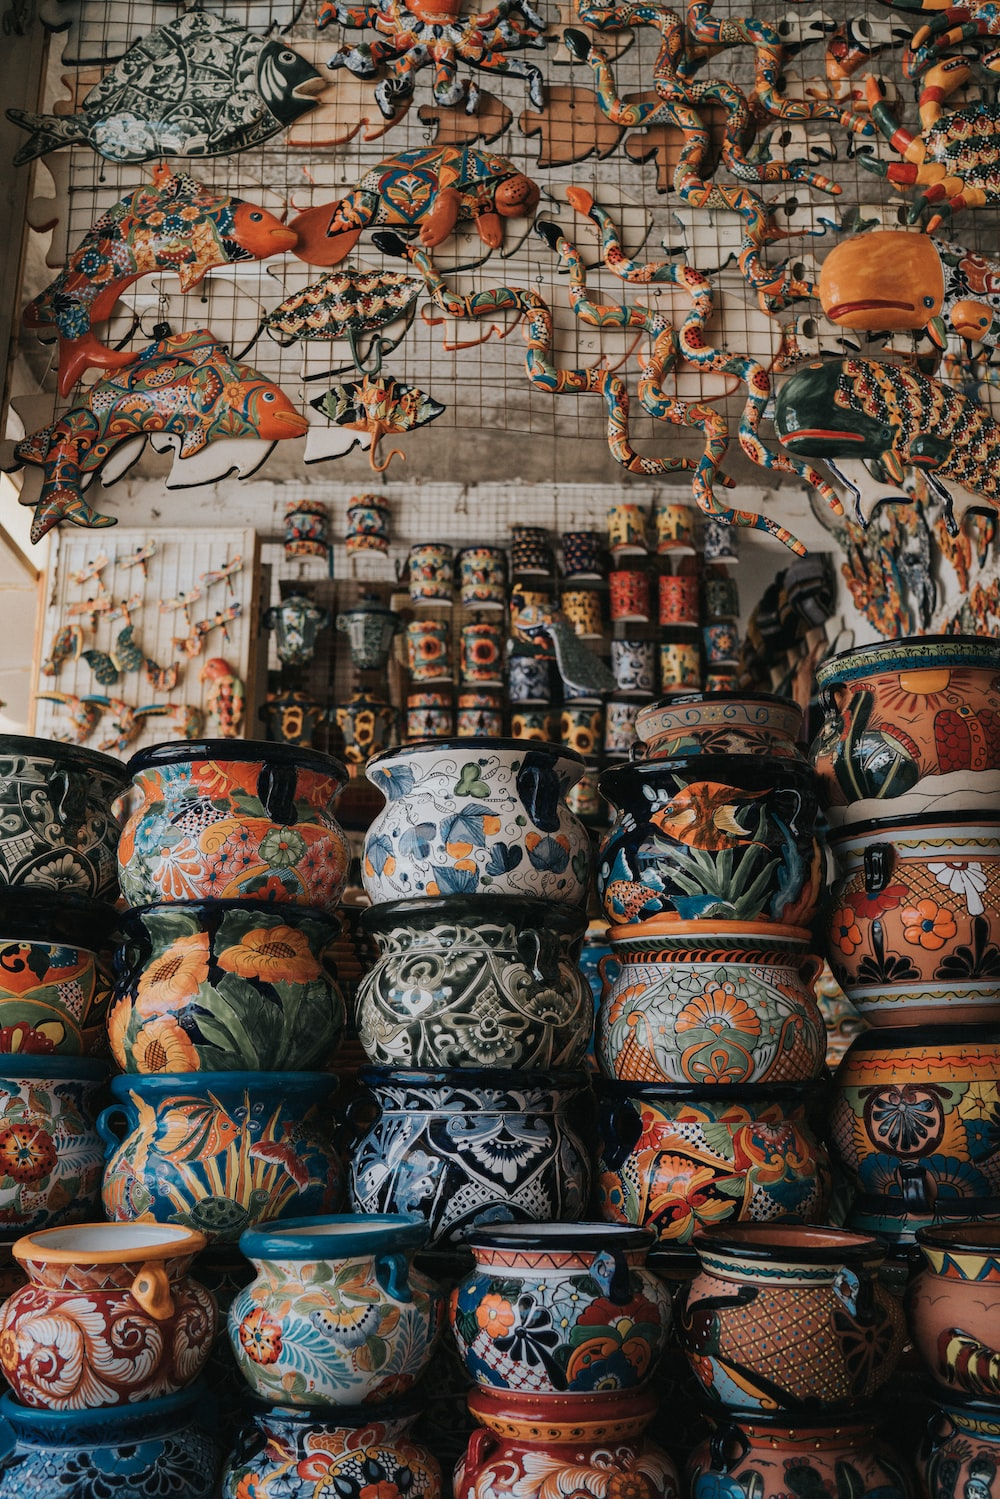 Mexican home decor - pottery and wall hangings